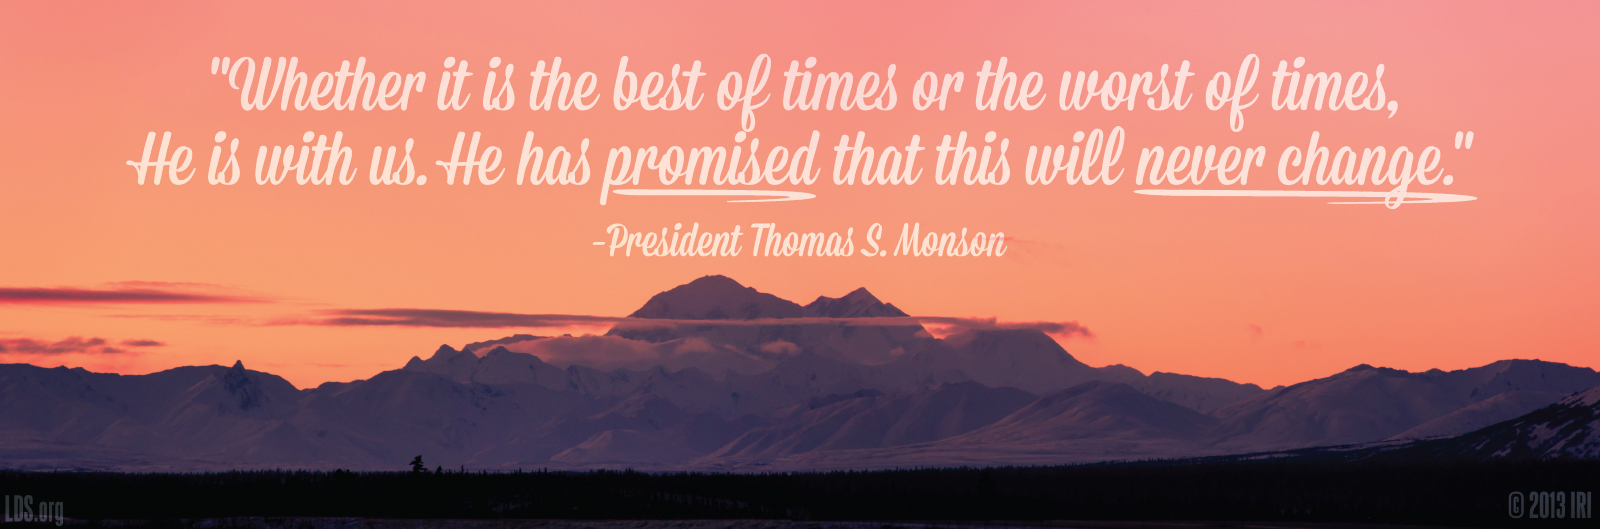 Top Wallpaper Mountain Quote - quote-monson-mountains-1173267-print  Pic_706093.jpg?download\u003dtrue